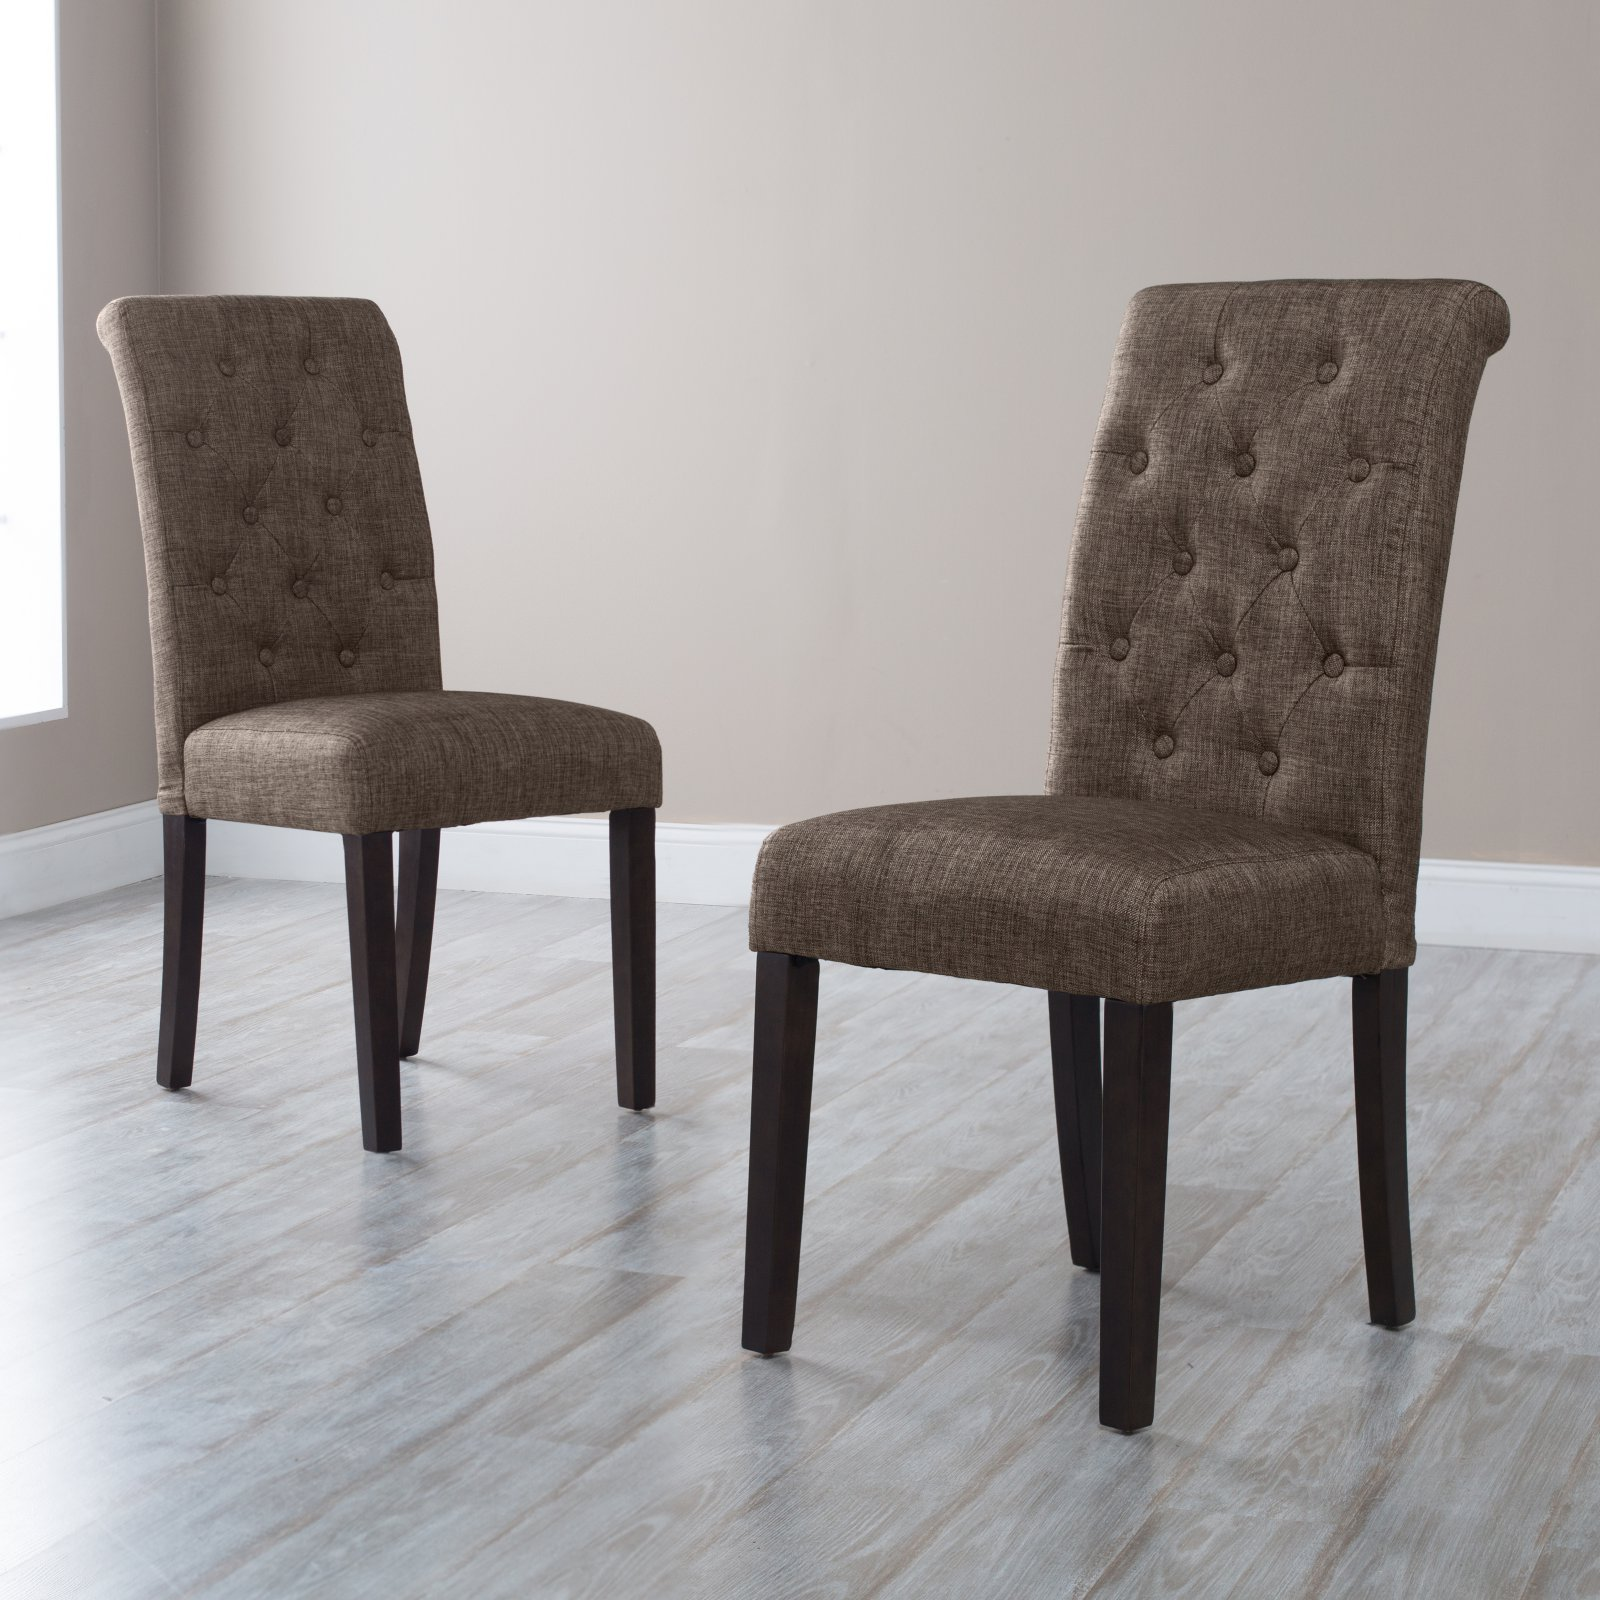 Morgana Tufted Parsons Dining Chair Set of 2 by Chintaly Imports